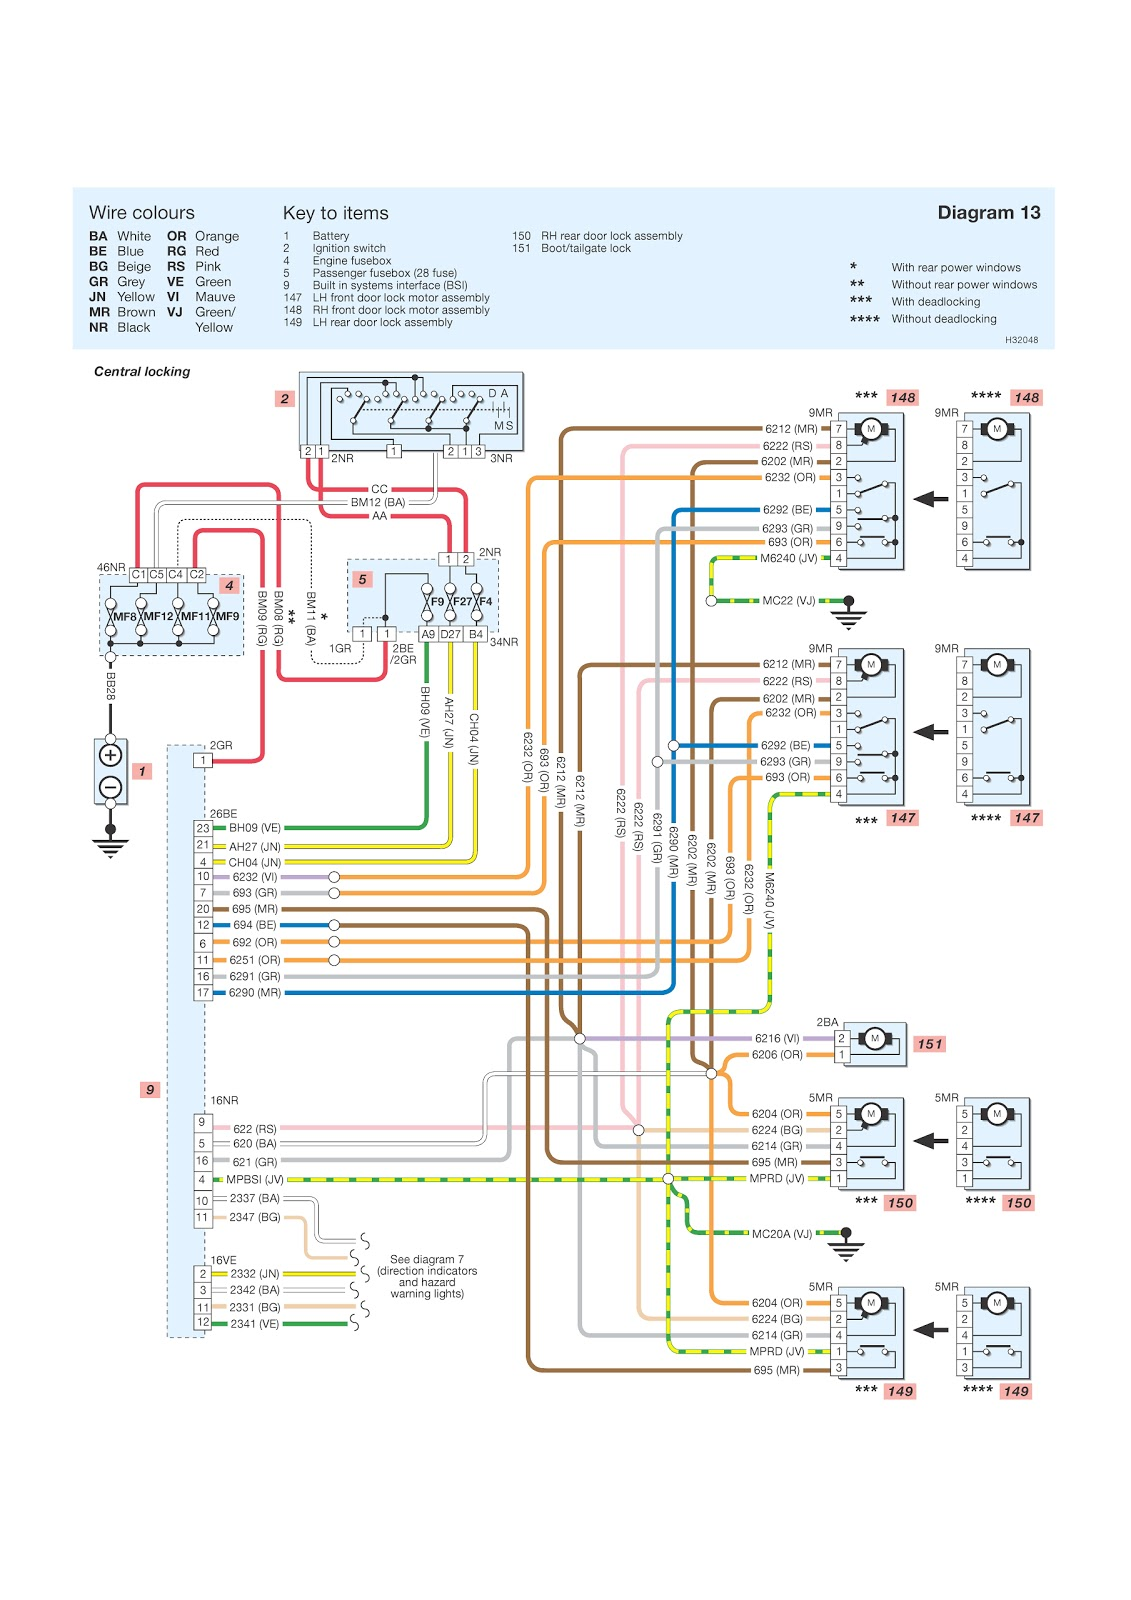 radio wiring diagram peugeot 106 - 2014 nissan frontier speaker wiring  diagram for wiring diagram schematics  wiring diagram schematics